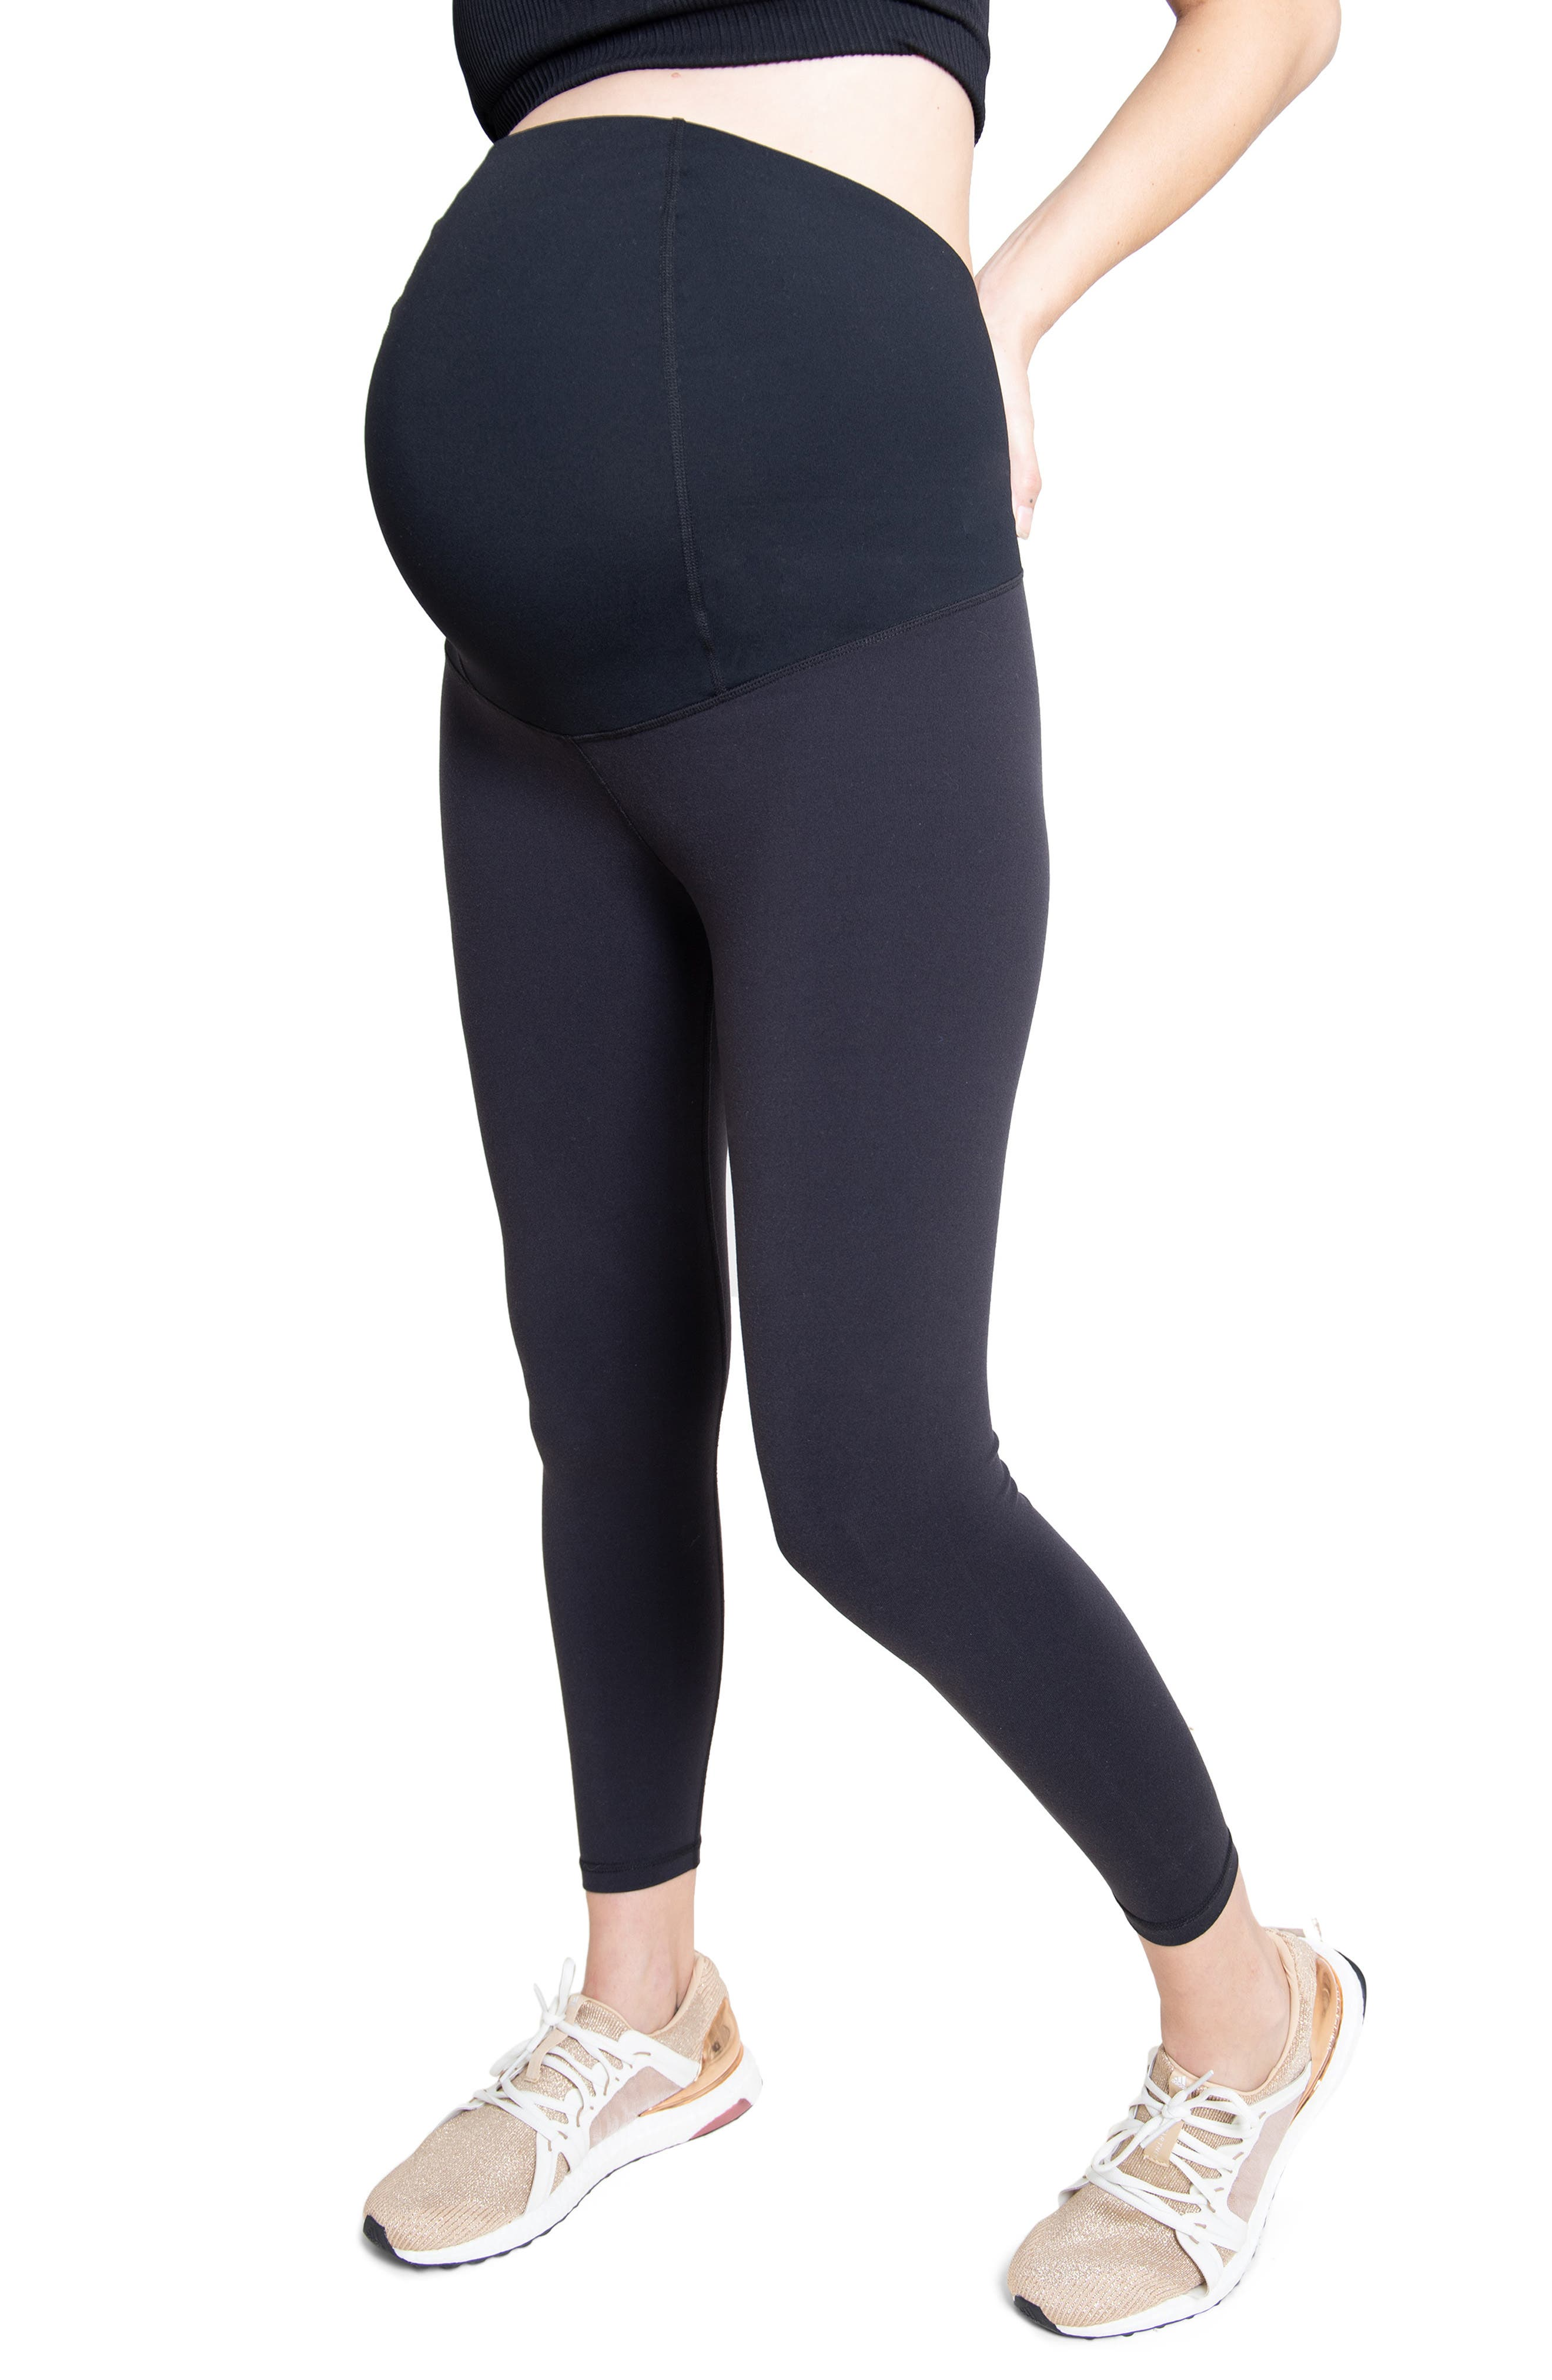 Ingrid & IsabelR Women's Ingrid & Isabel Crossover Waist 7/8 Active Maternity Leggings,  Small - Black